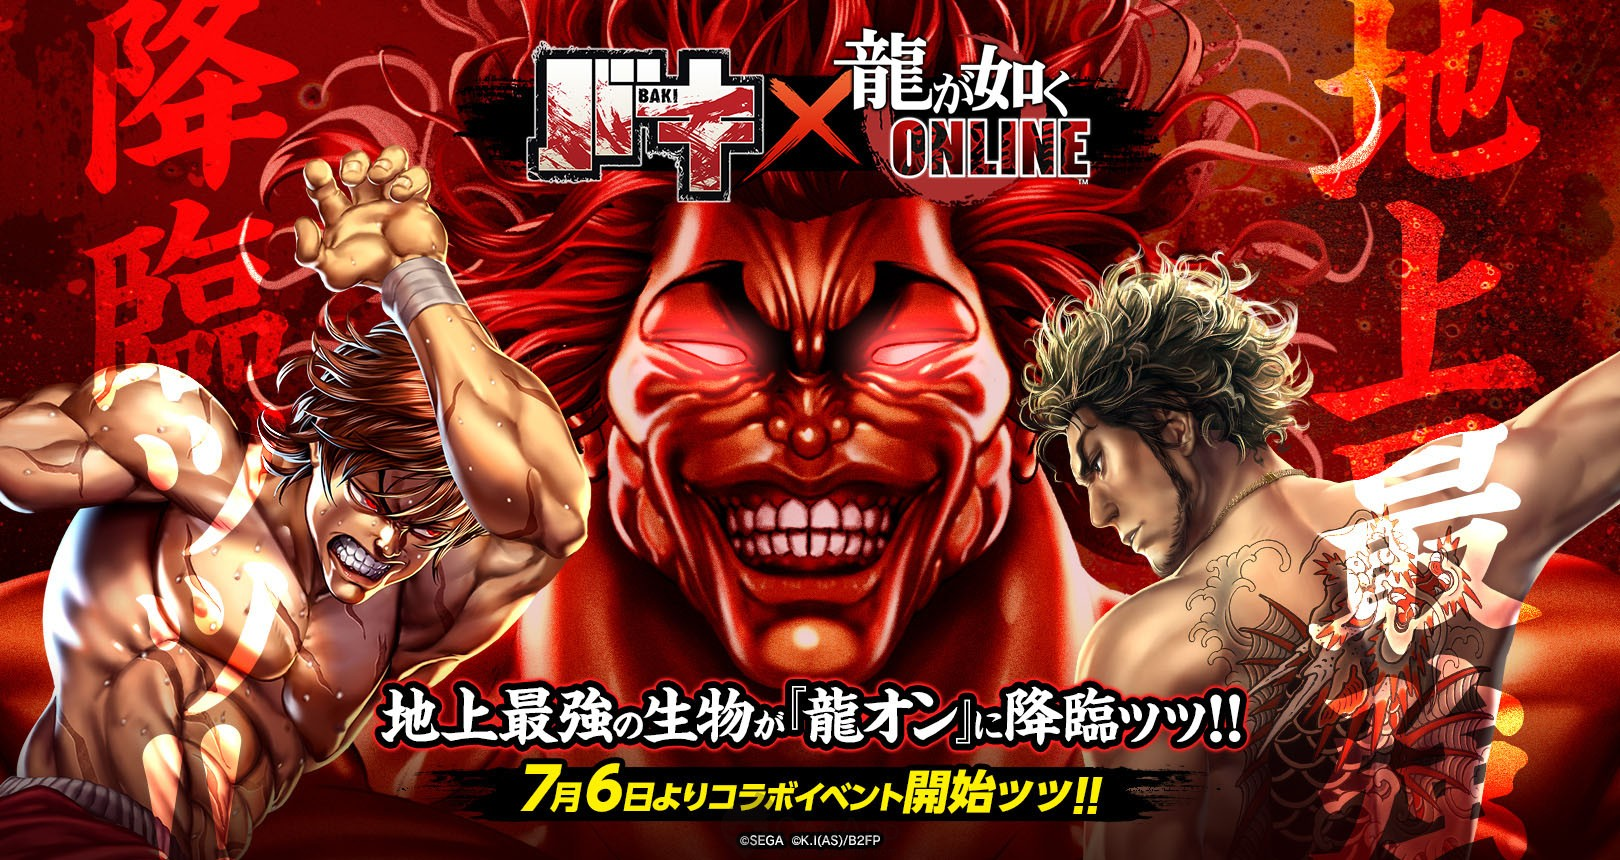 """Yakuza Online"" x ""Baki"" Collaboration Announced for July 6!"